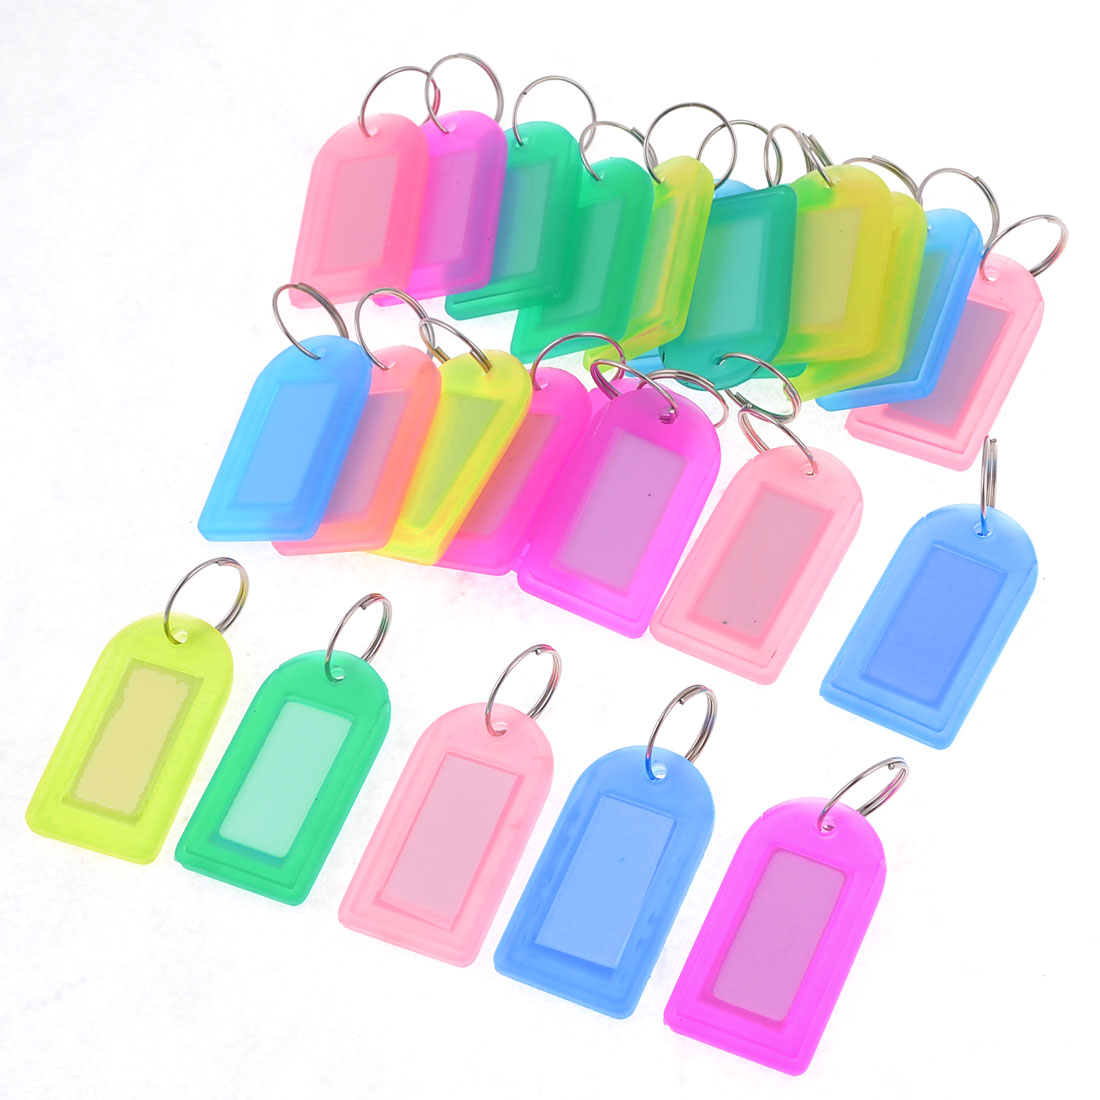 25 Pcs Plastic Name Tag Badge Clip Holder Keychain Assorted Color